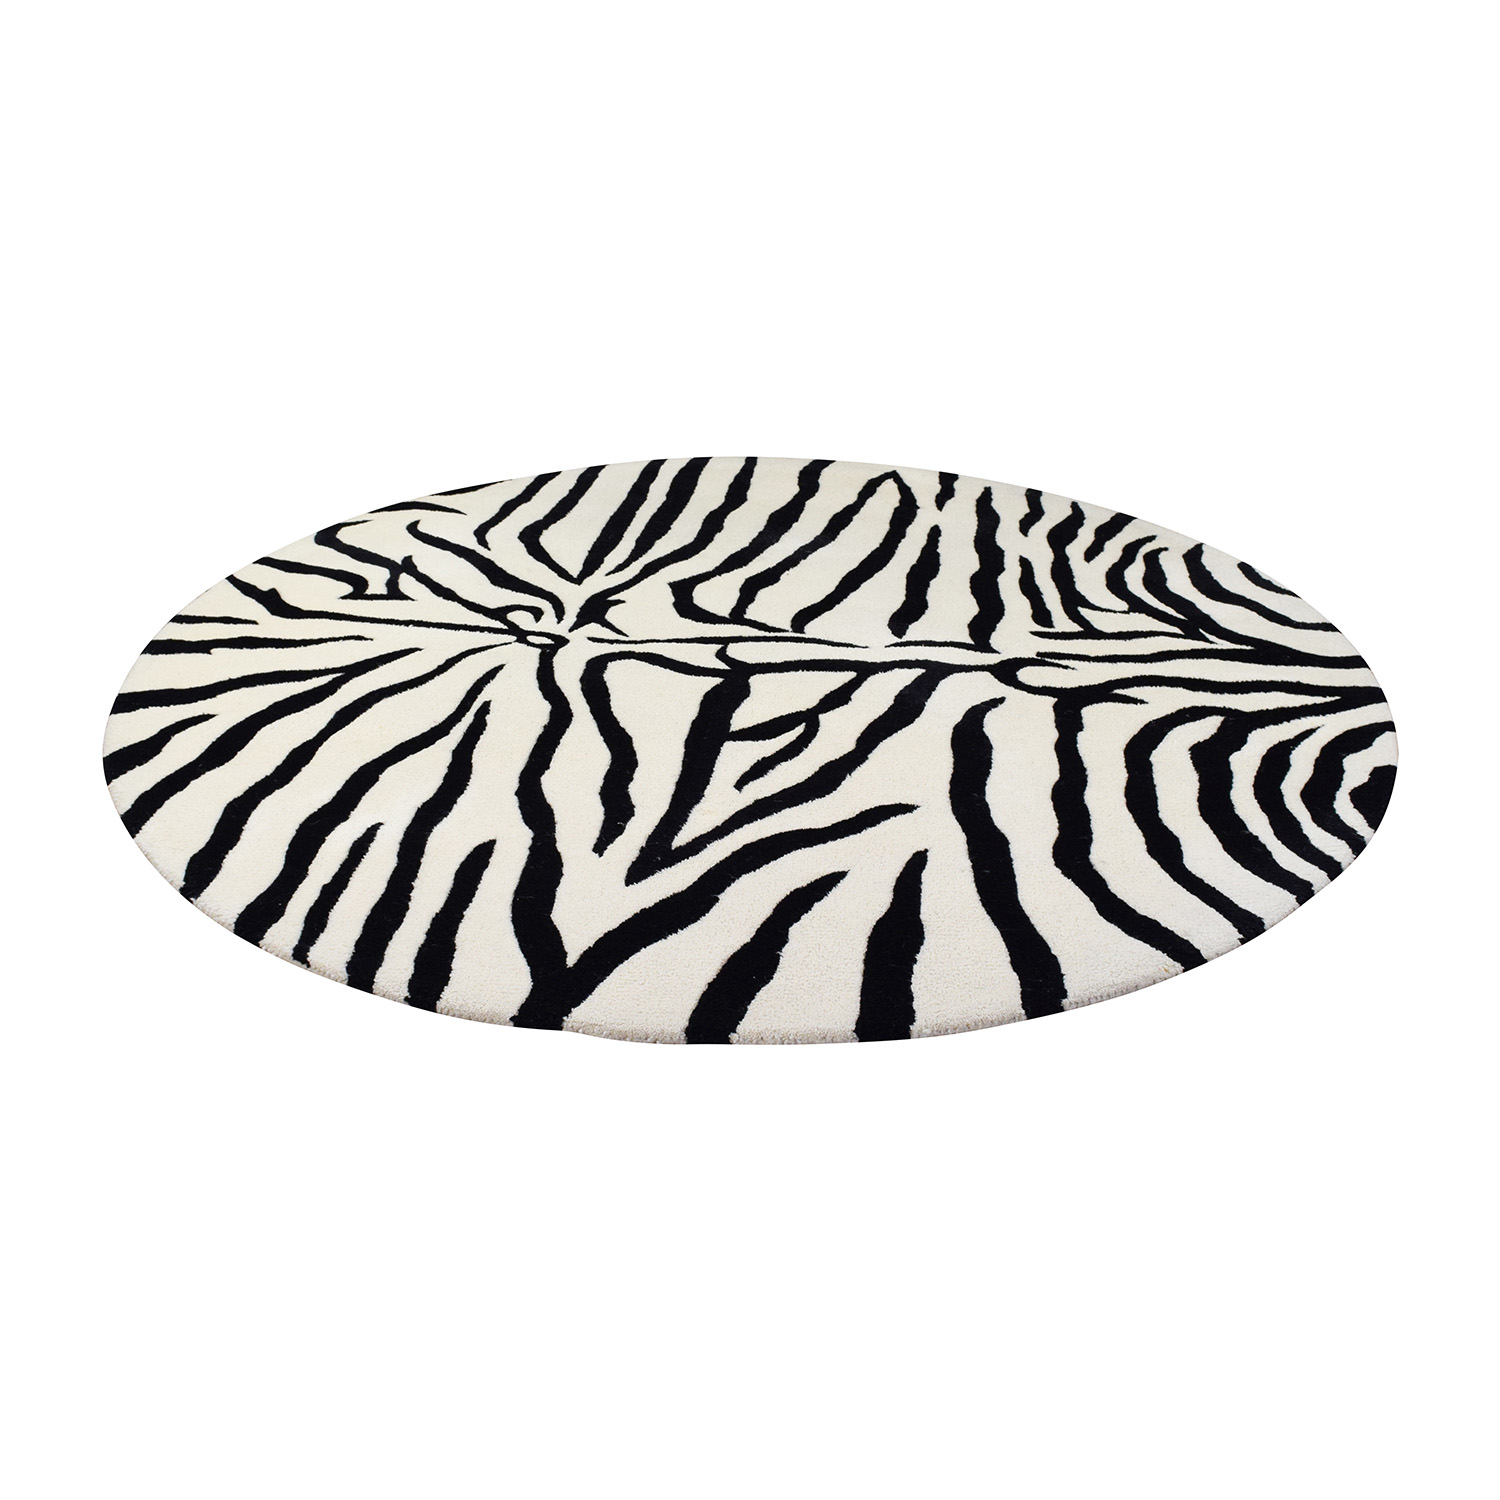 rug rugs carpets furniture vintage at skin century master id felt backing large area with zebra f taxidermy c